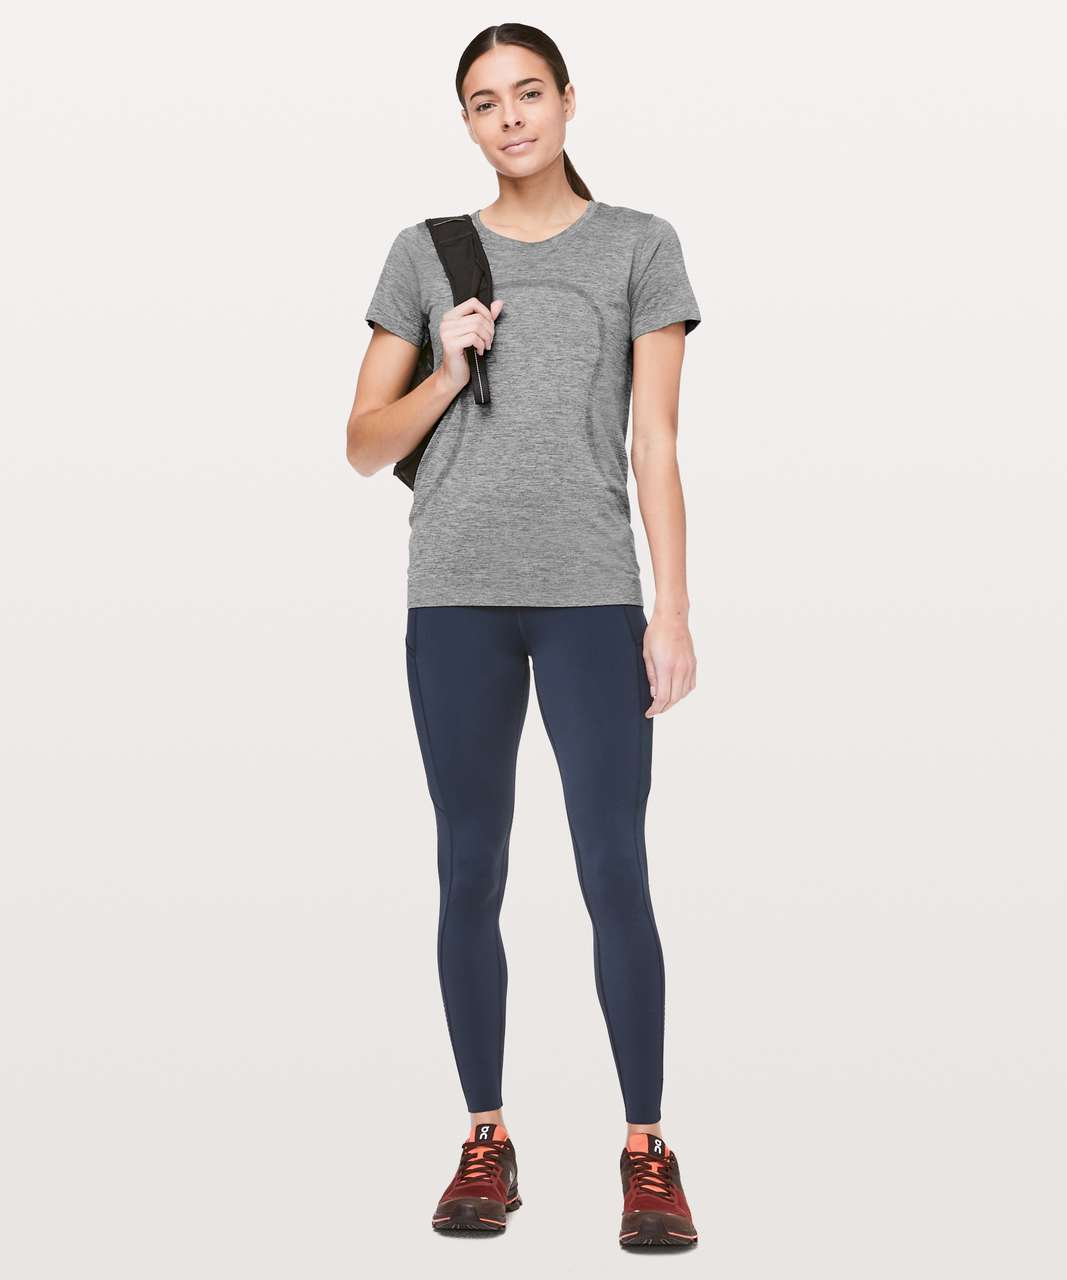 Lululemon Swiftly Tech Short Sleeve (Breeze) *Relaxed Fit - Slate / White